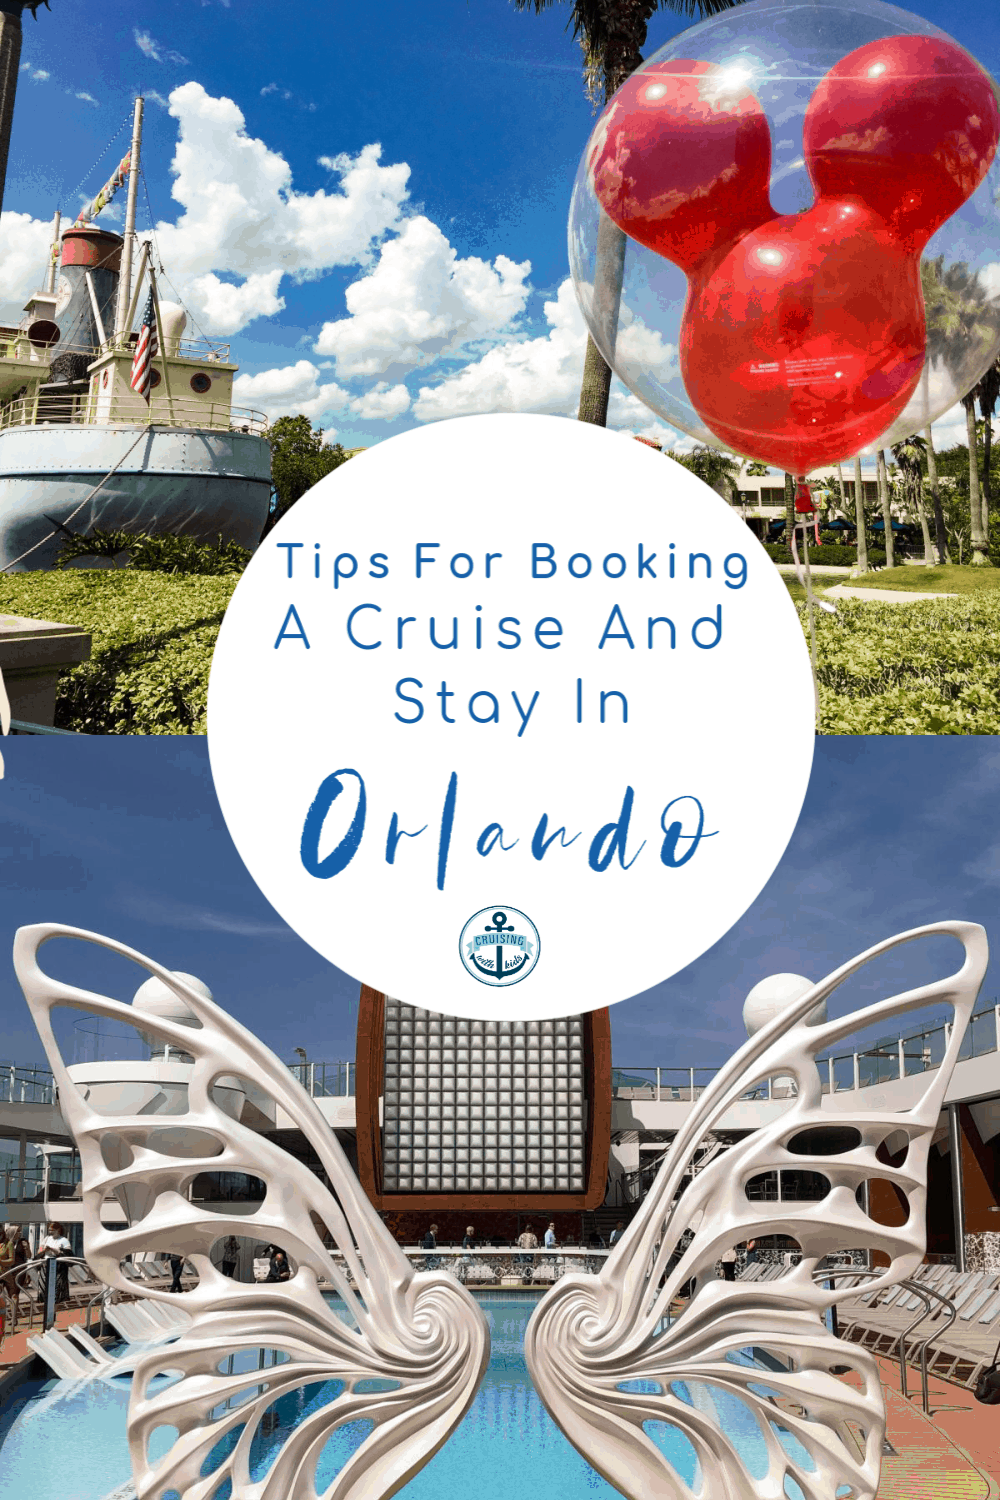 Tips for booking a cruise and stay in Orlando